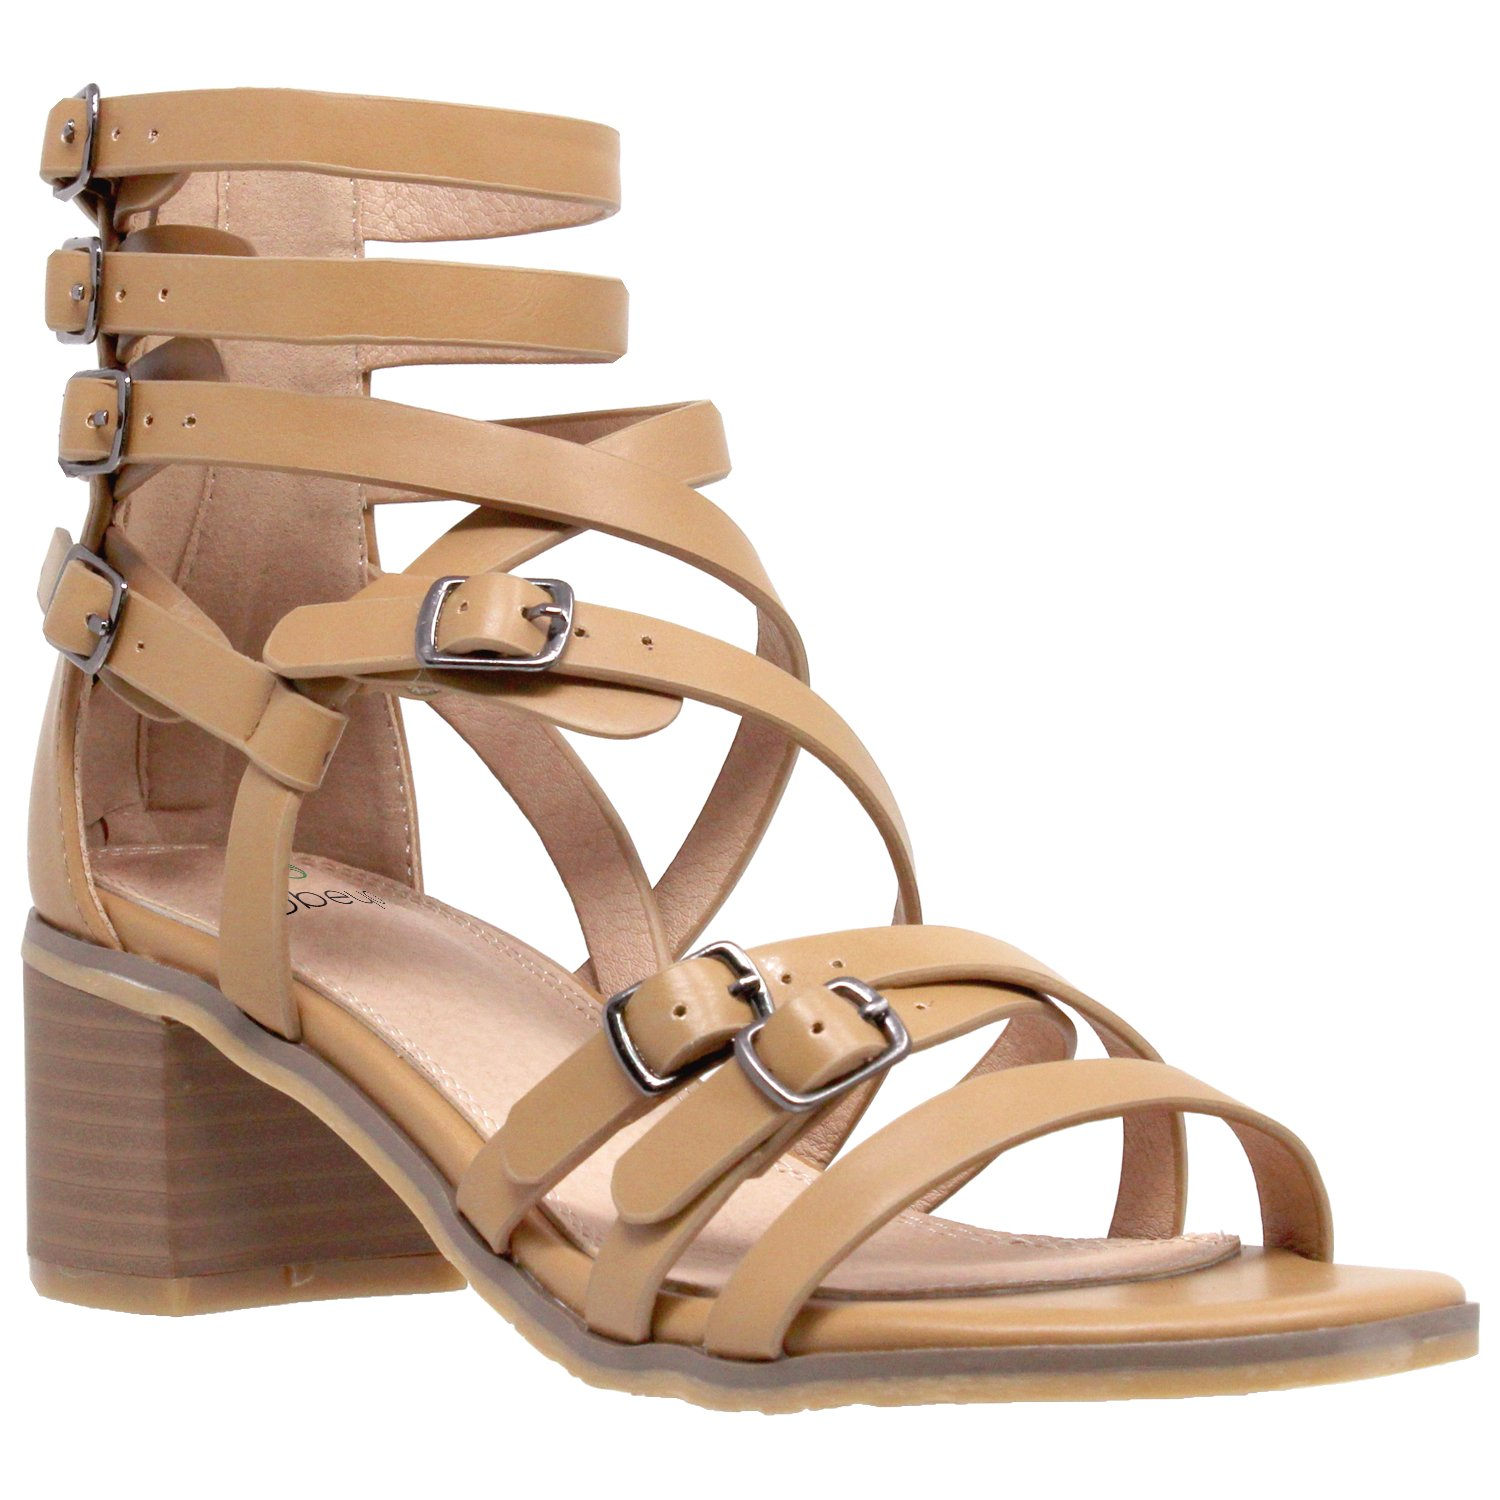 3433a58c0df Womens Dress Sandals Strappy Buckle Accent Block Low Heel Gladiators Tan SZ  7